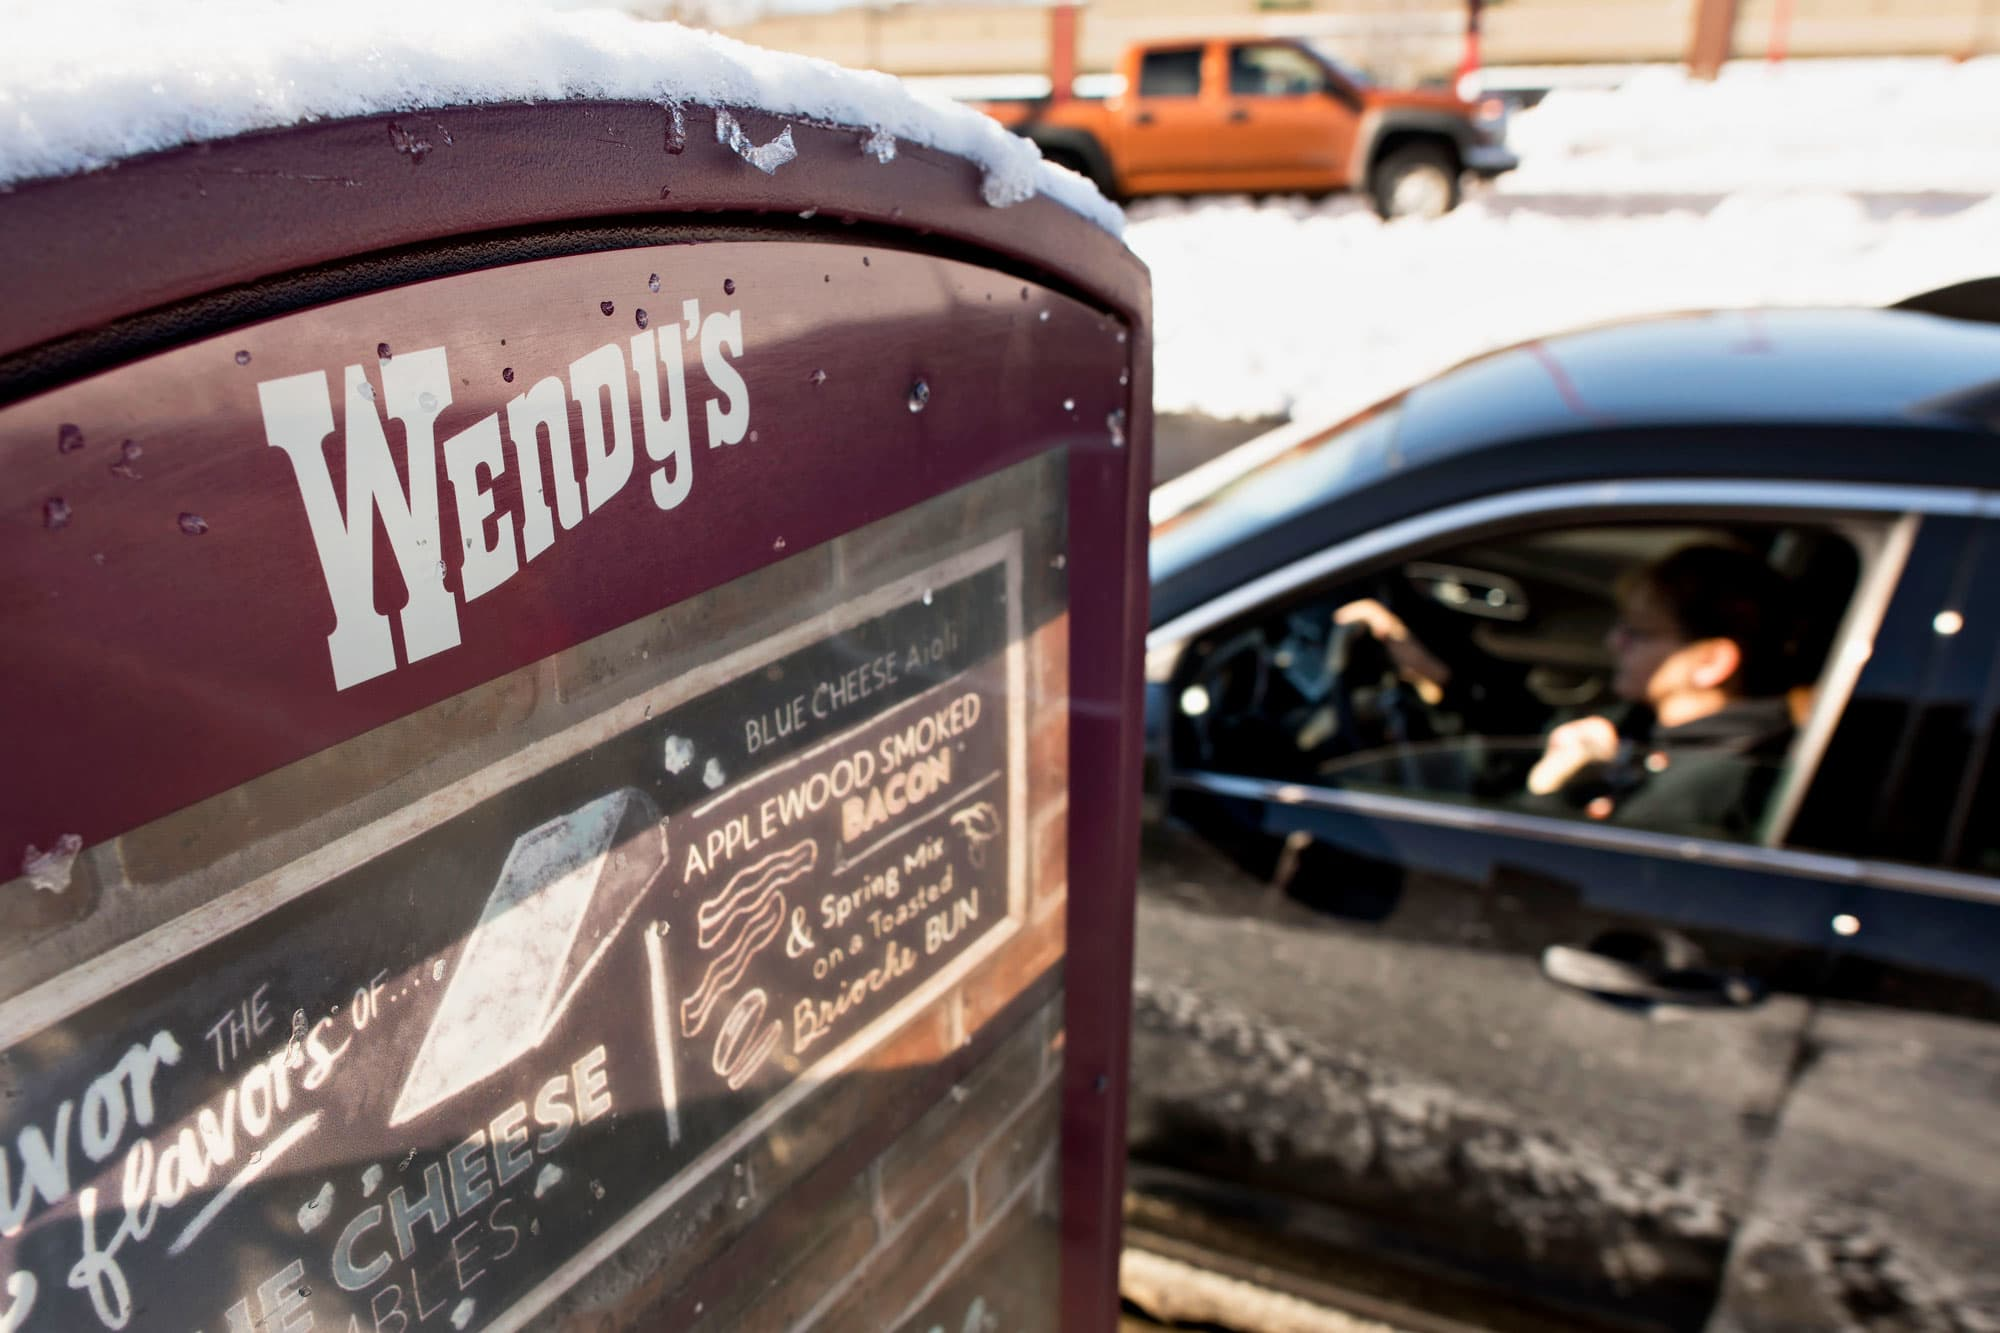 Analysts are skeptical about Wendy's nationwide breakfast; stock sinks 10%